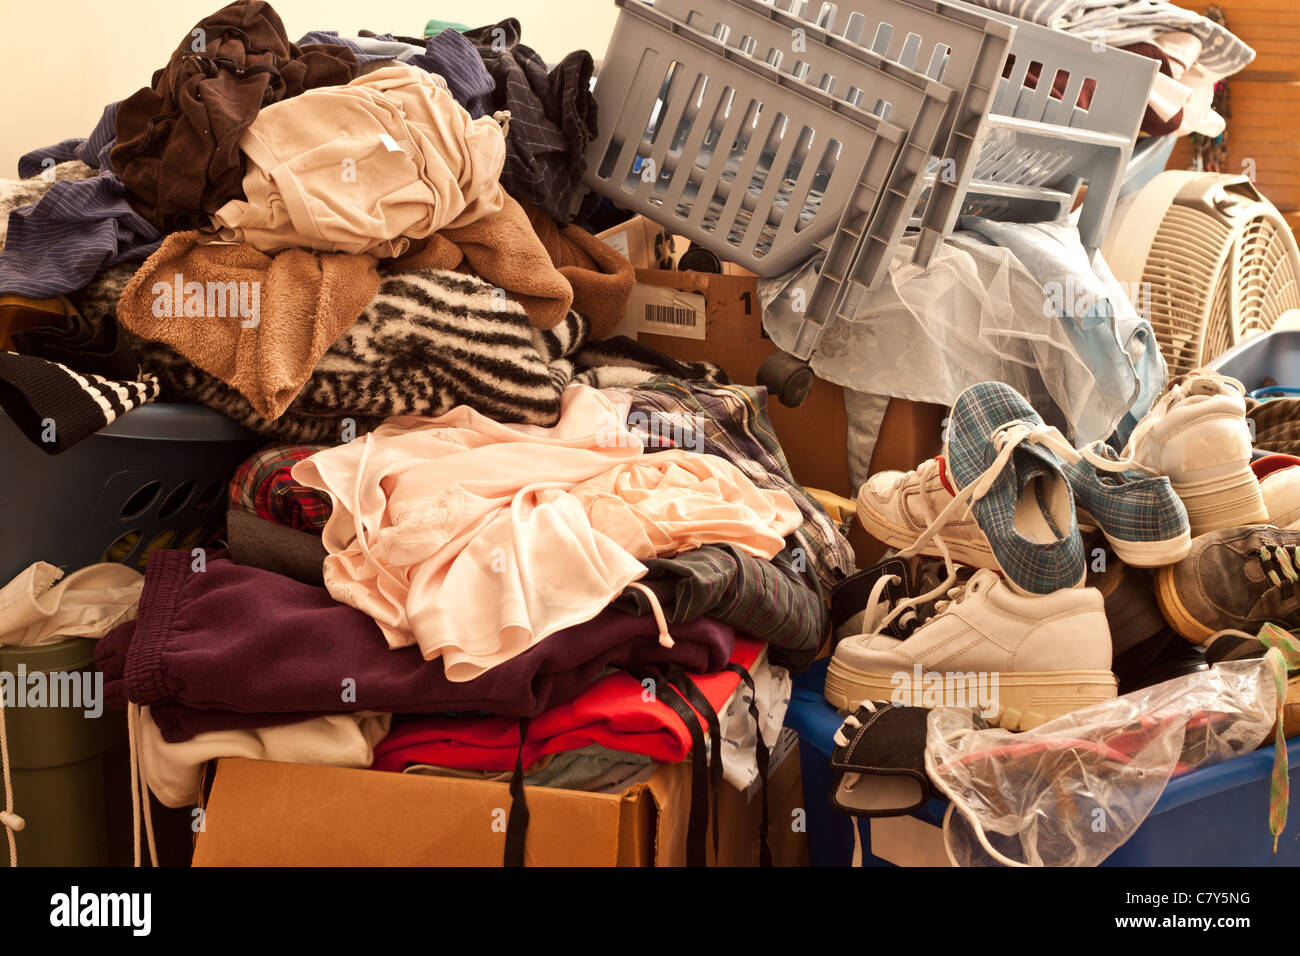 Pile of misc items stored in an unorganized fashion in a room - Stock Image